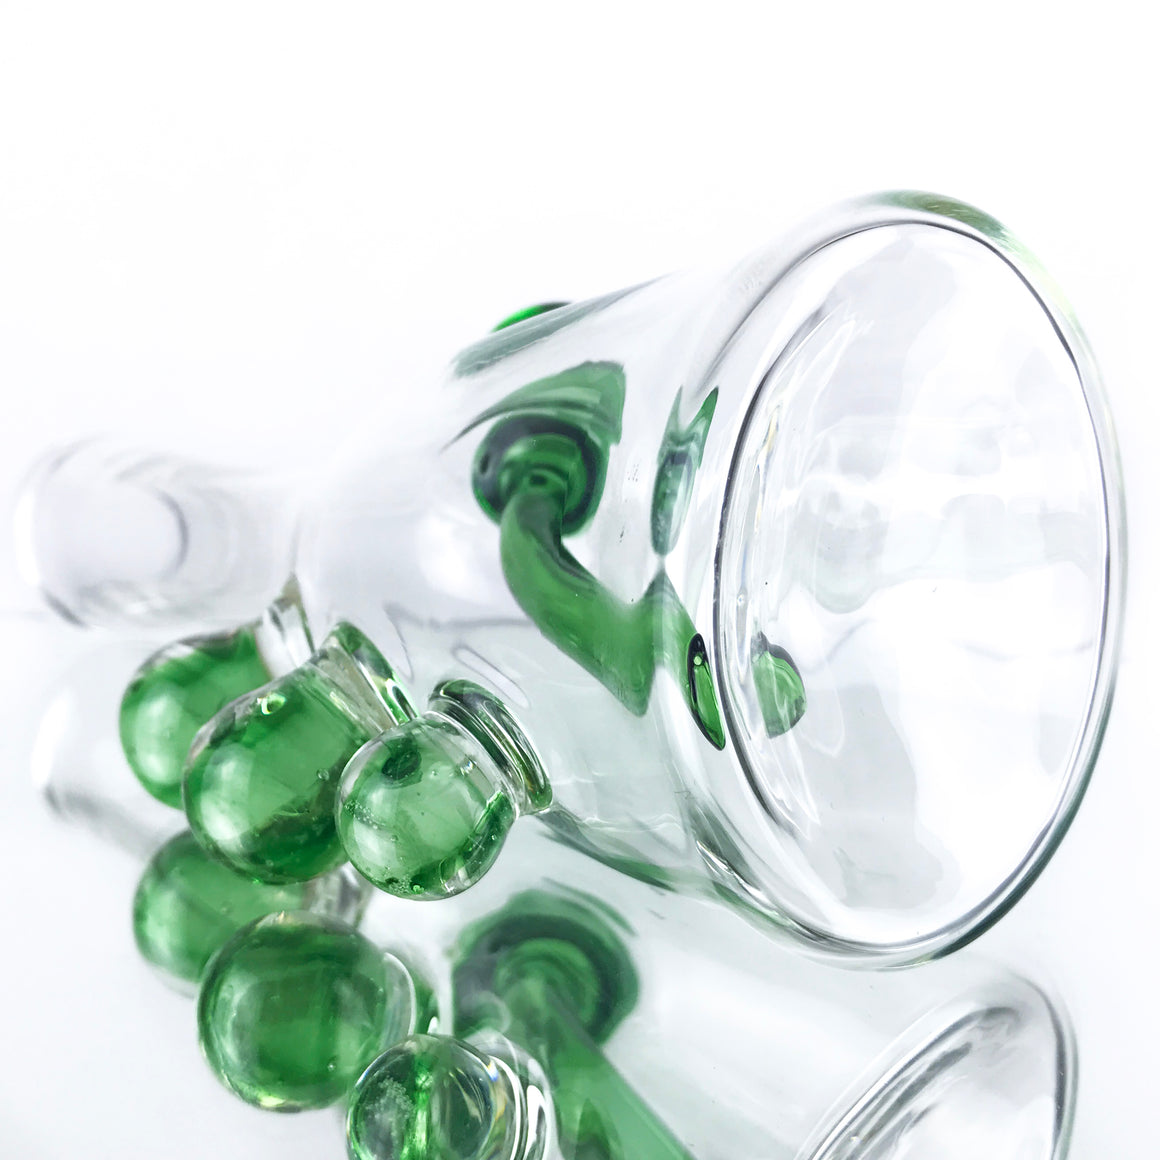 Clear Bottle Rig - Green - 14mm Female